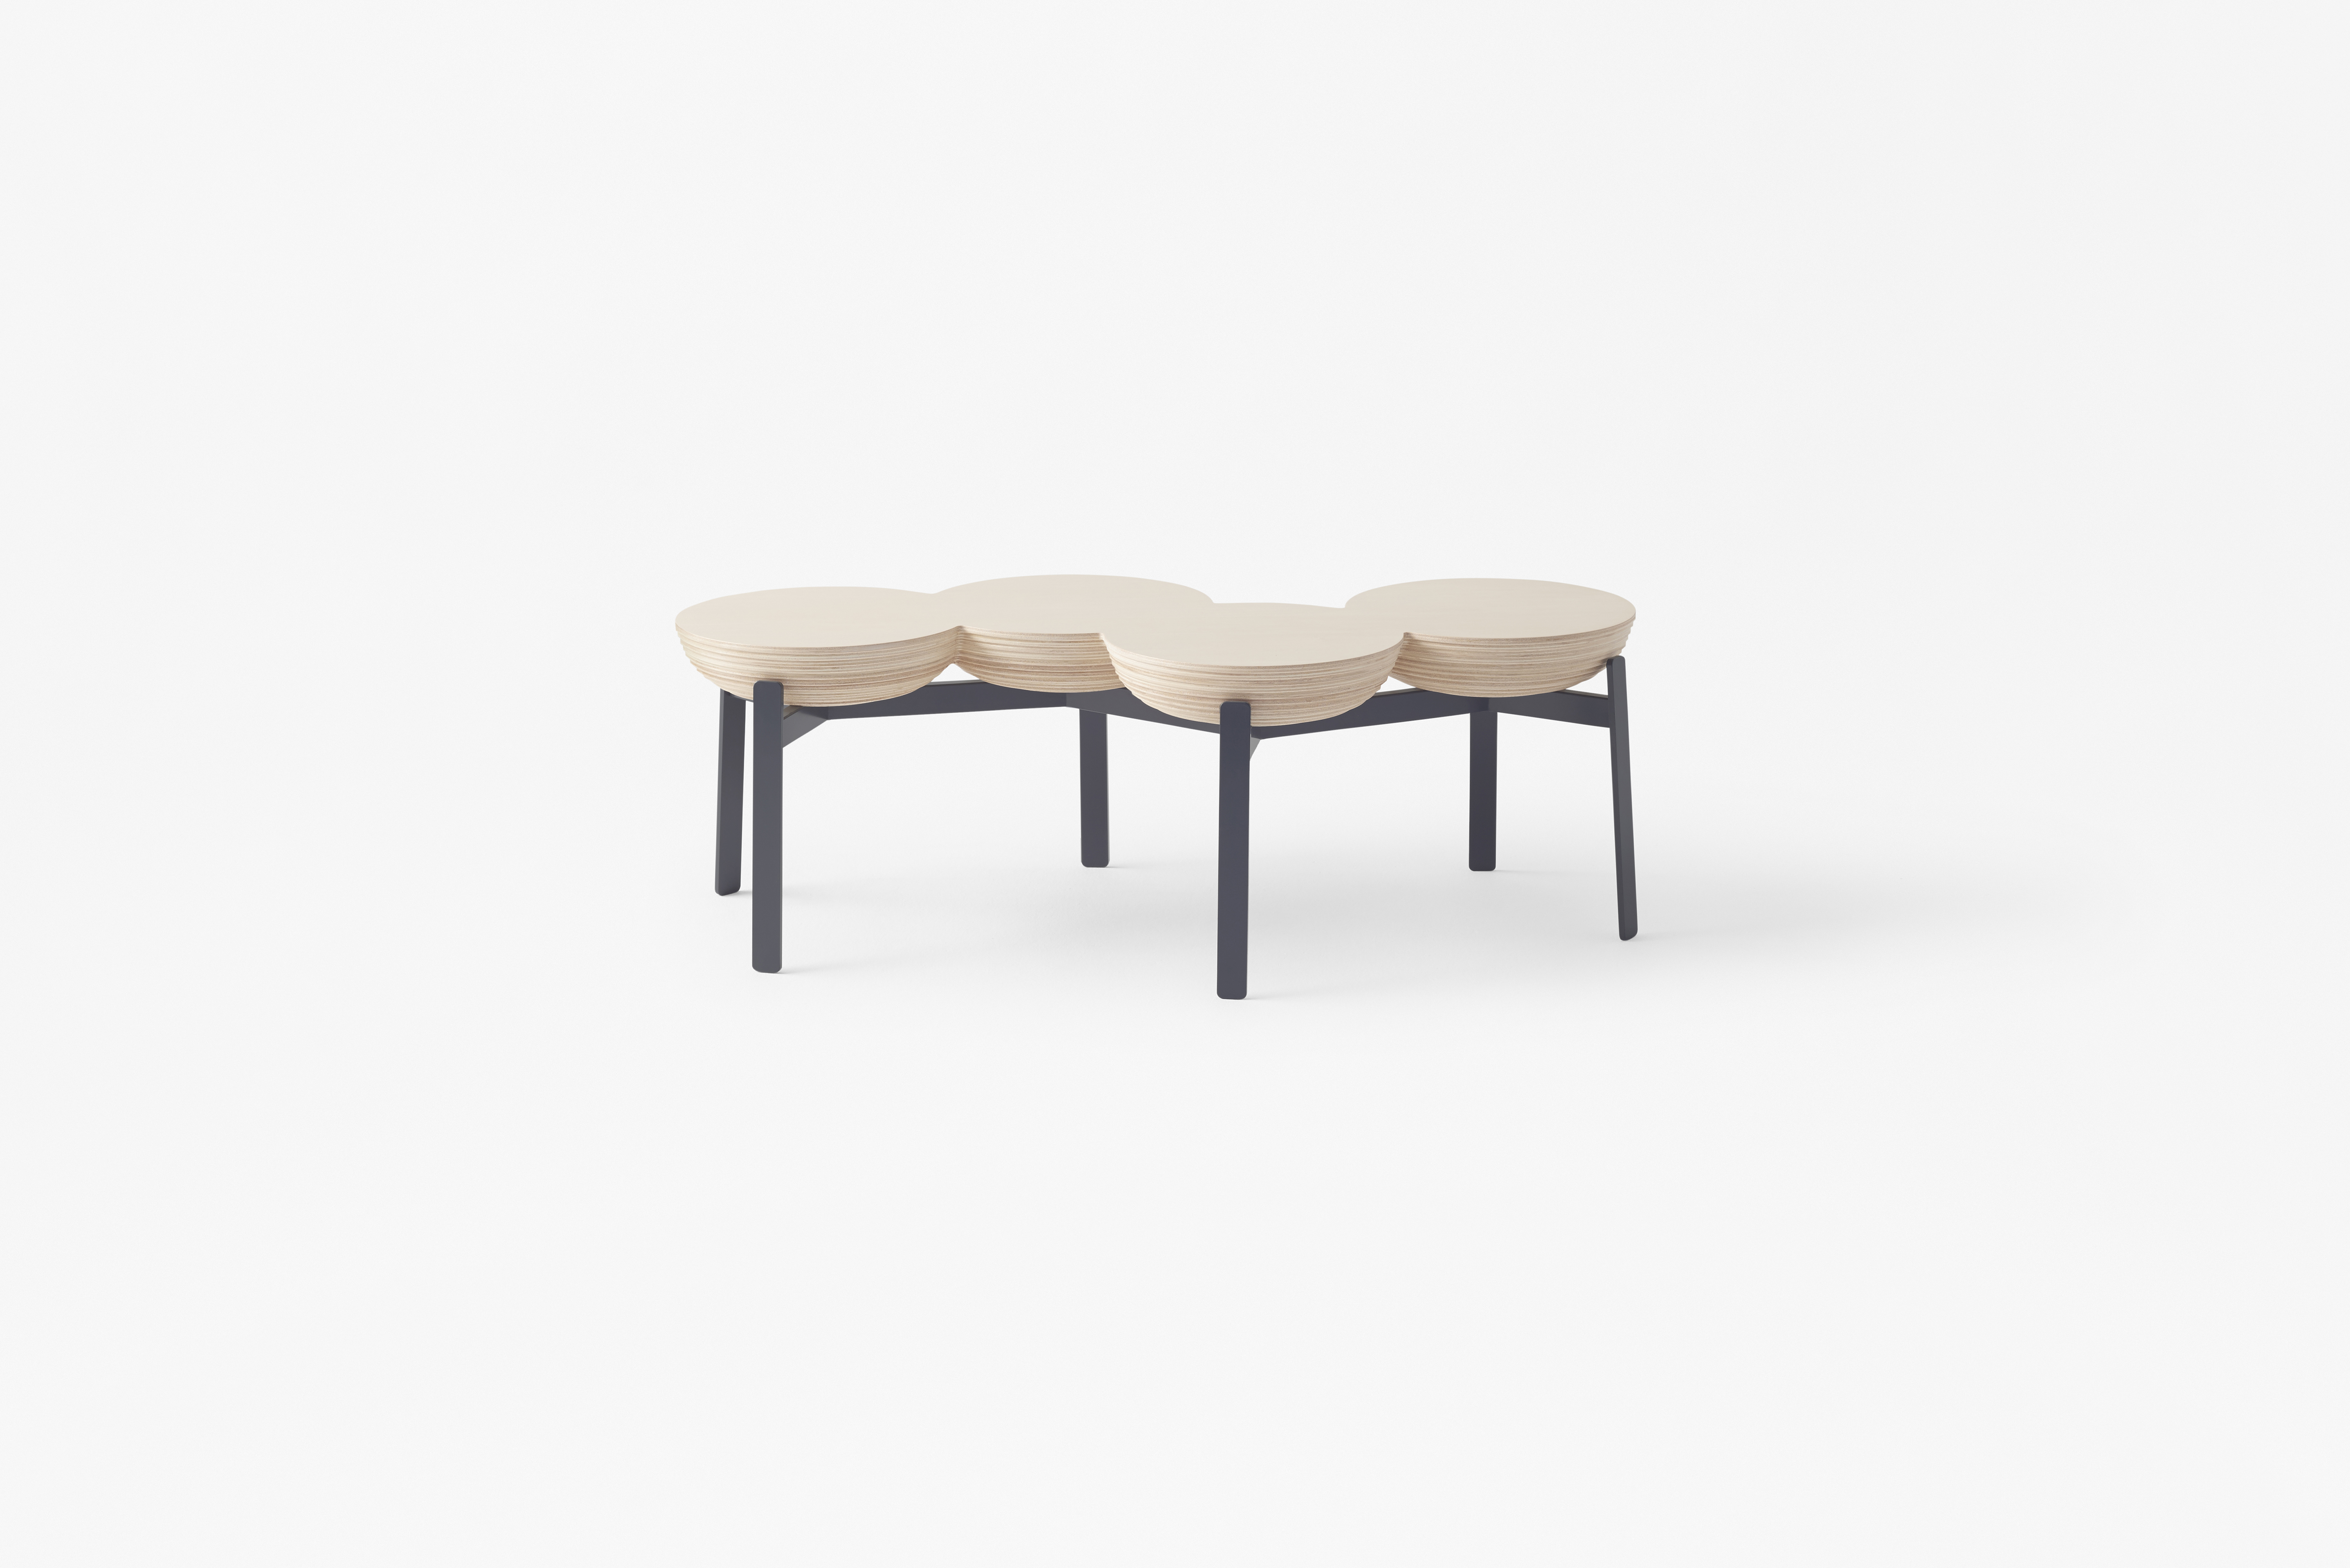 furniture06